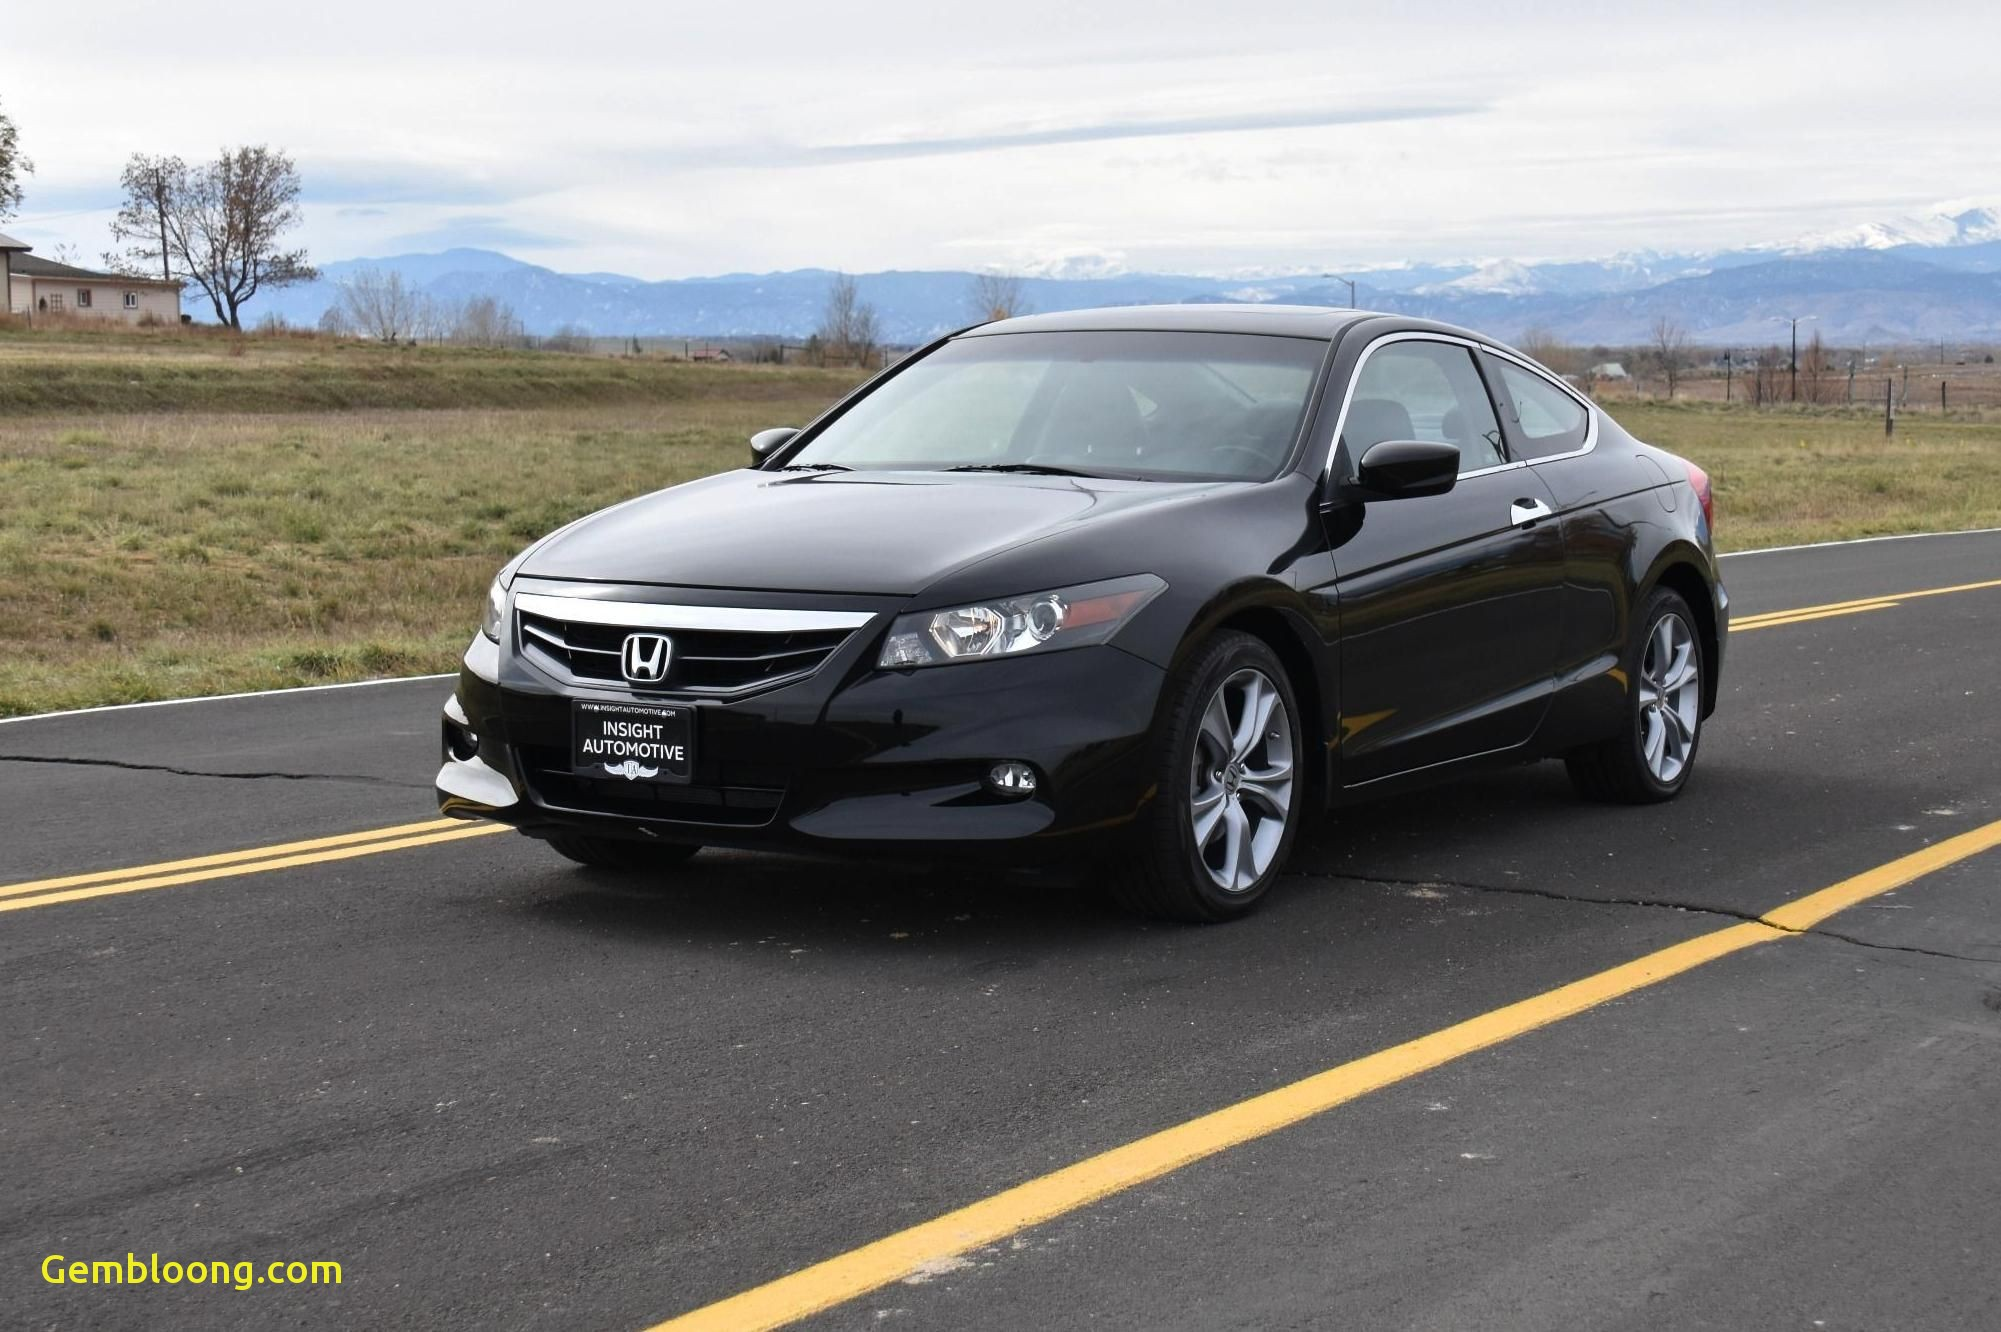 cars for sale by government elegant 2012 honda accord ex l v6 insight automotive